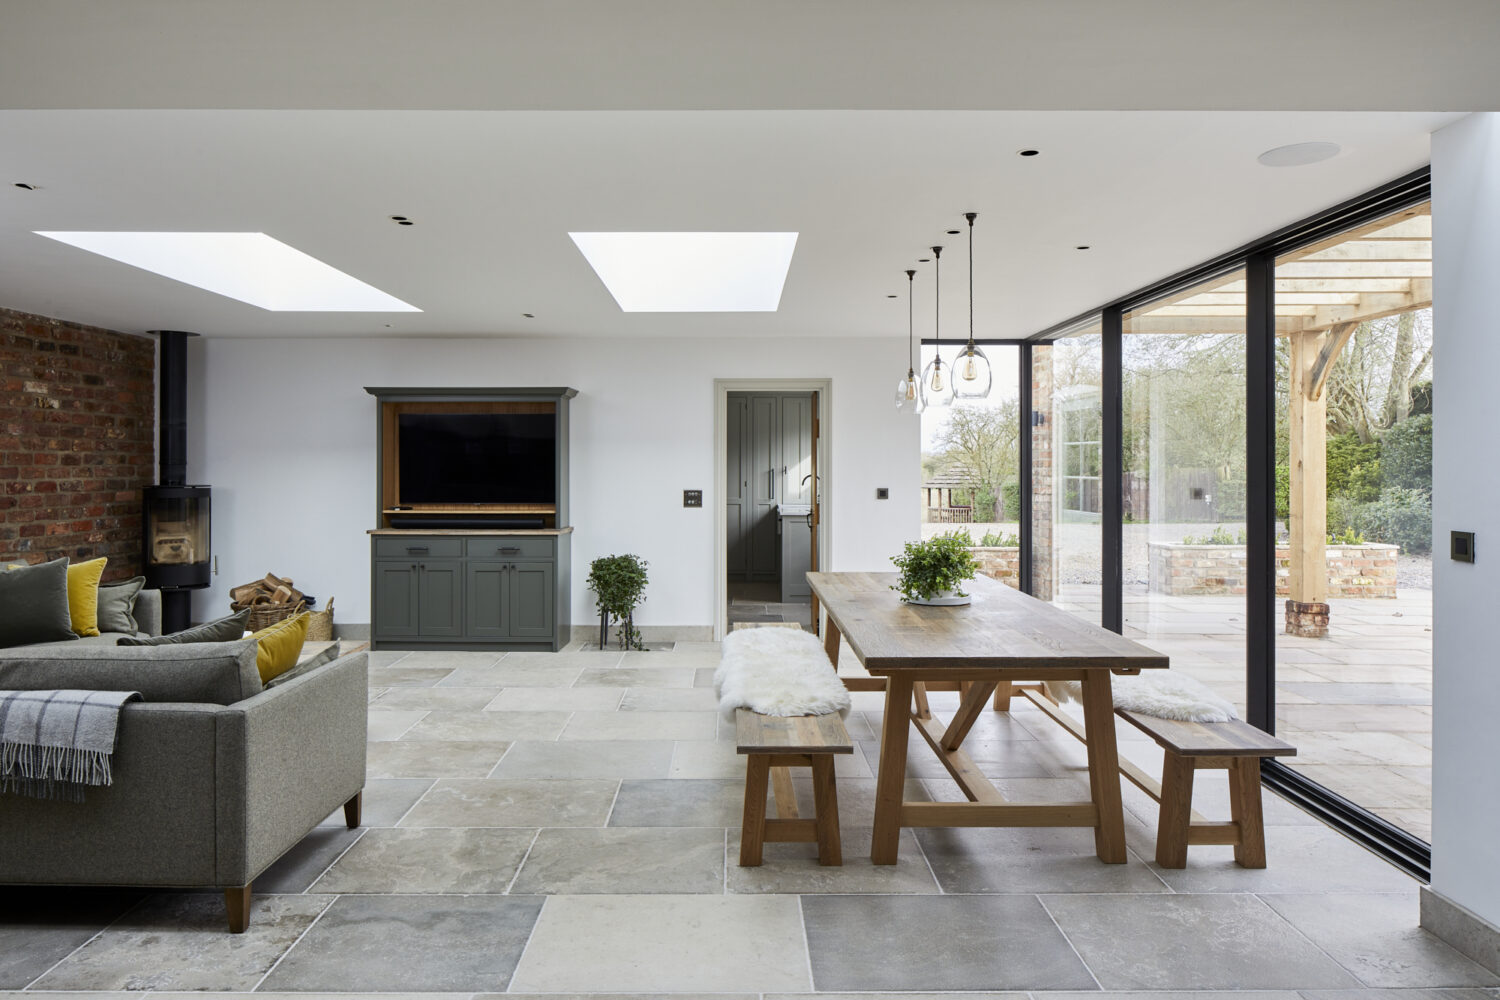 Dining table in open plan room